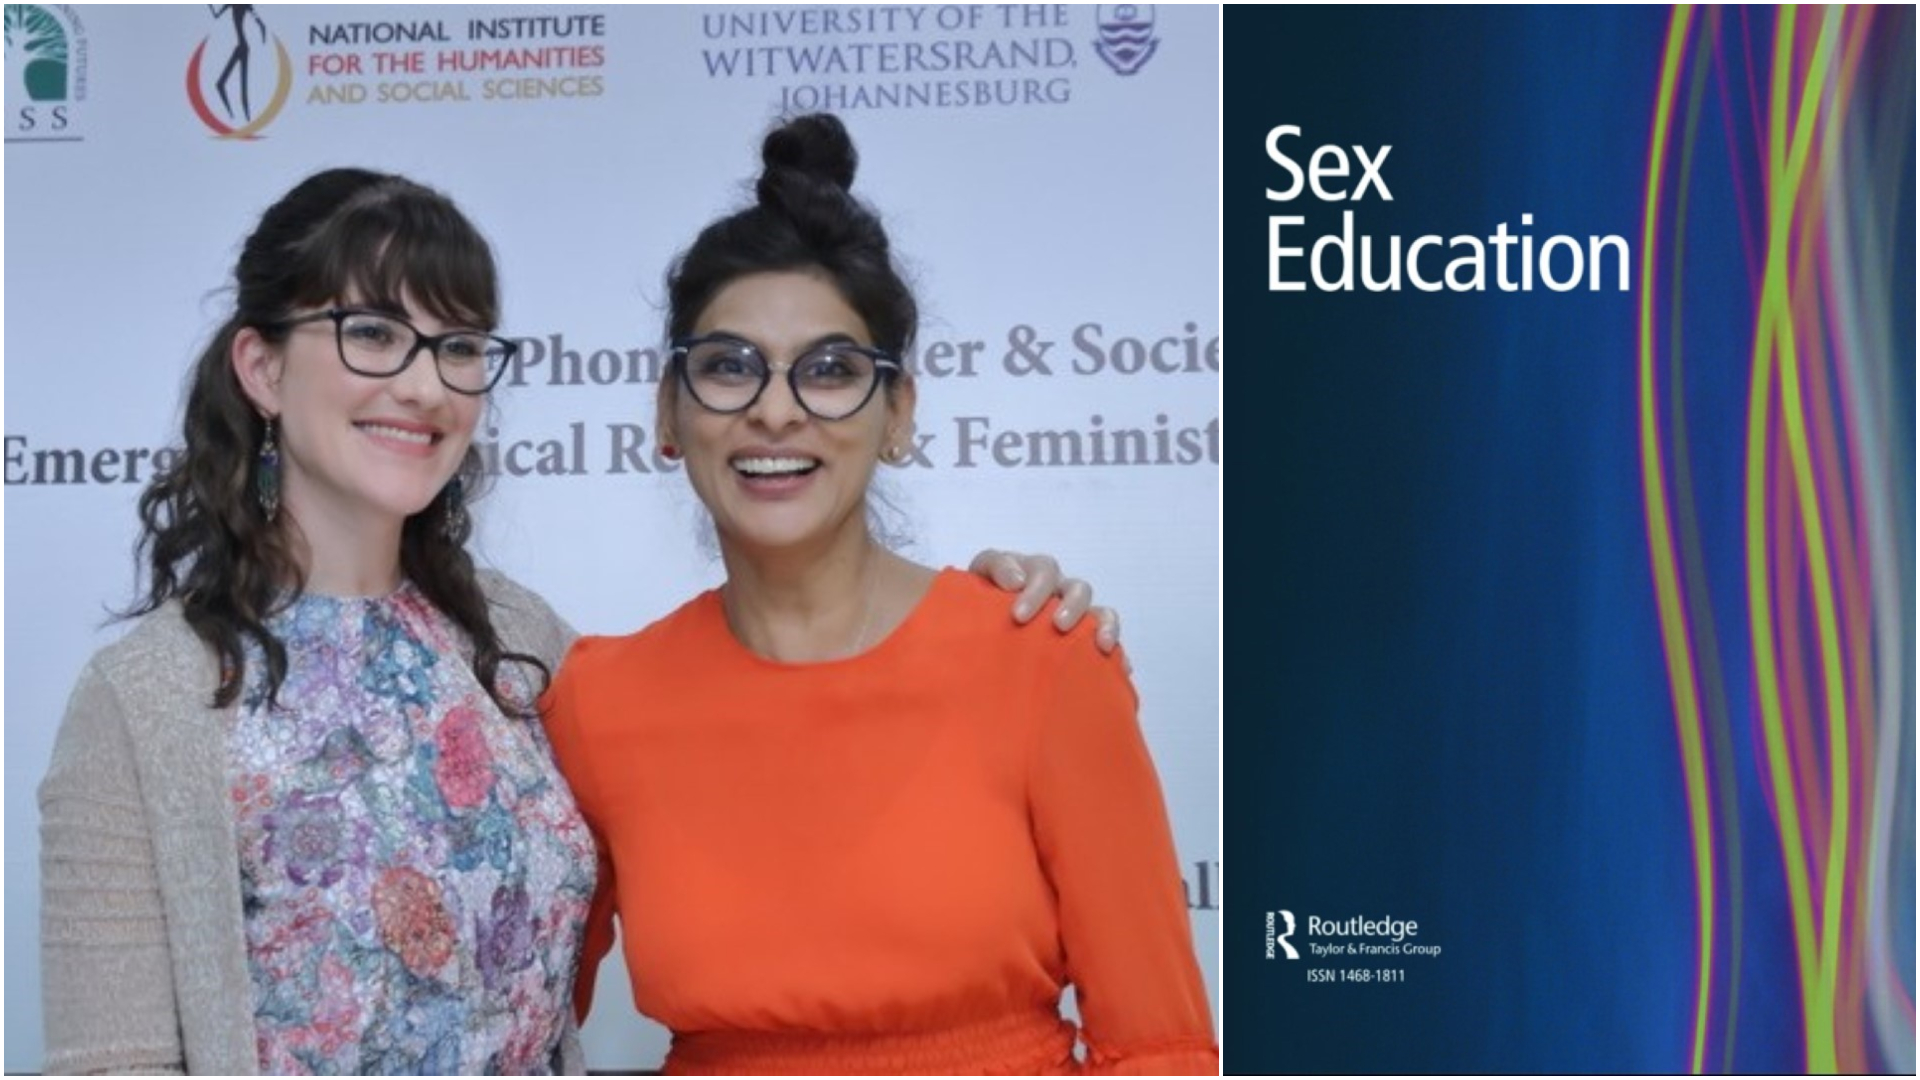 UKZN Academic co-edits special issue of Sex Education Journal